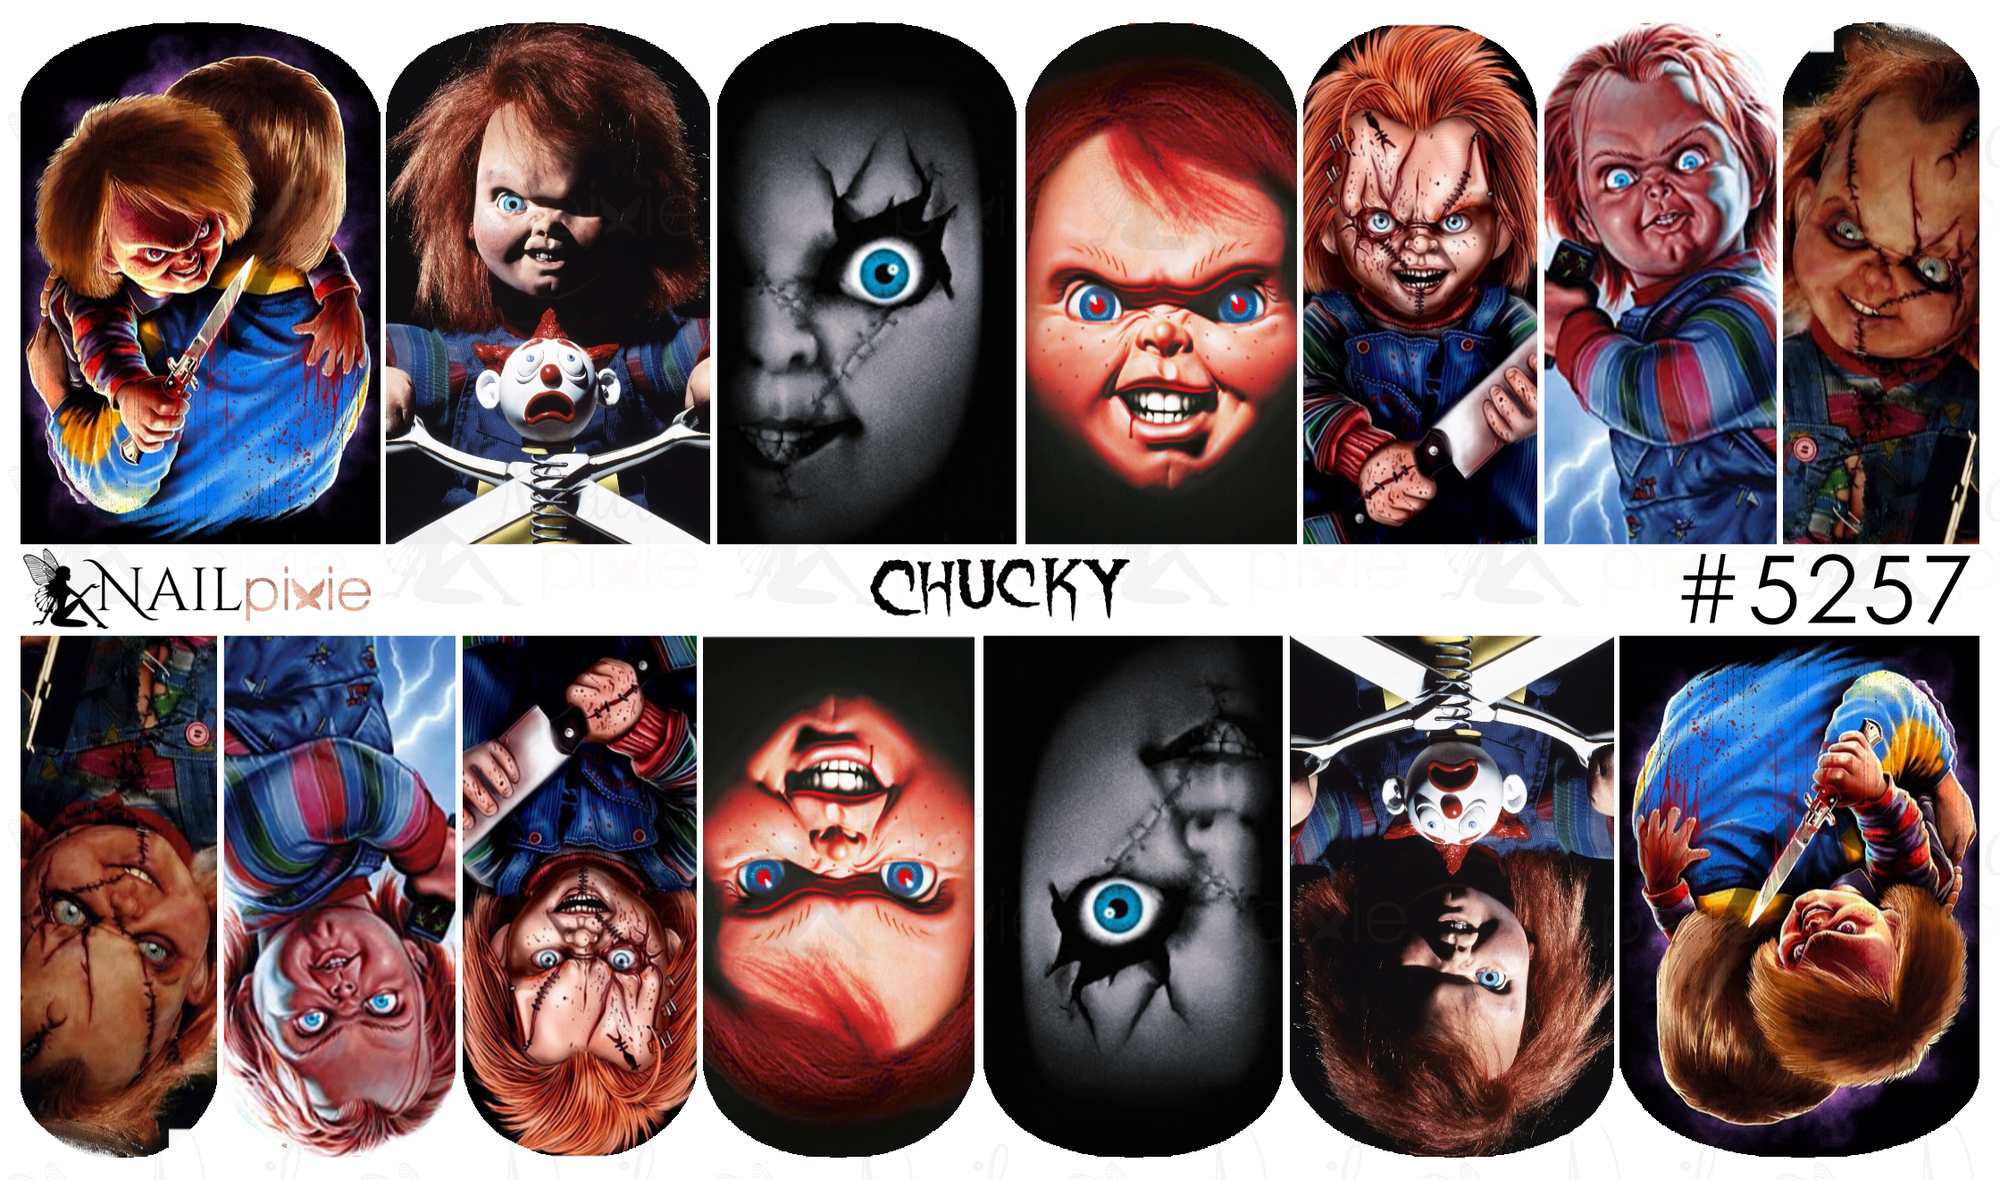 CHUCKY Childs Play Horror Full Cover Halloween Nail Decal ...